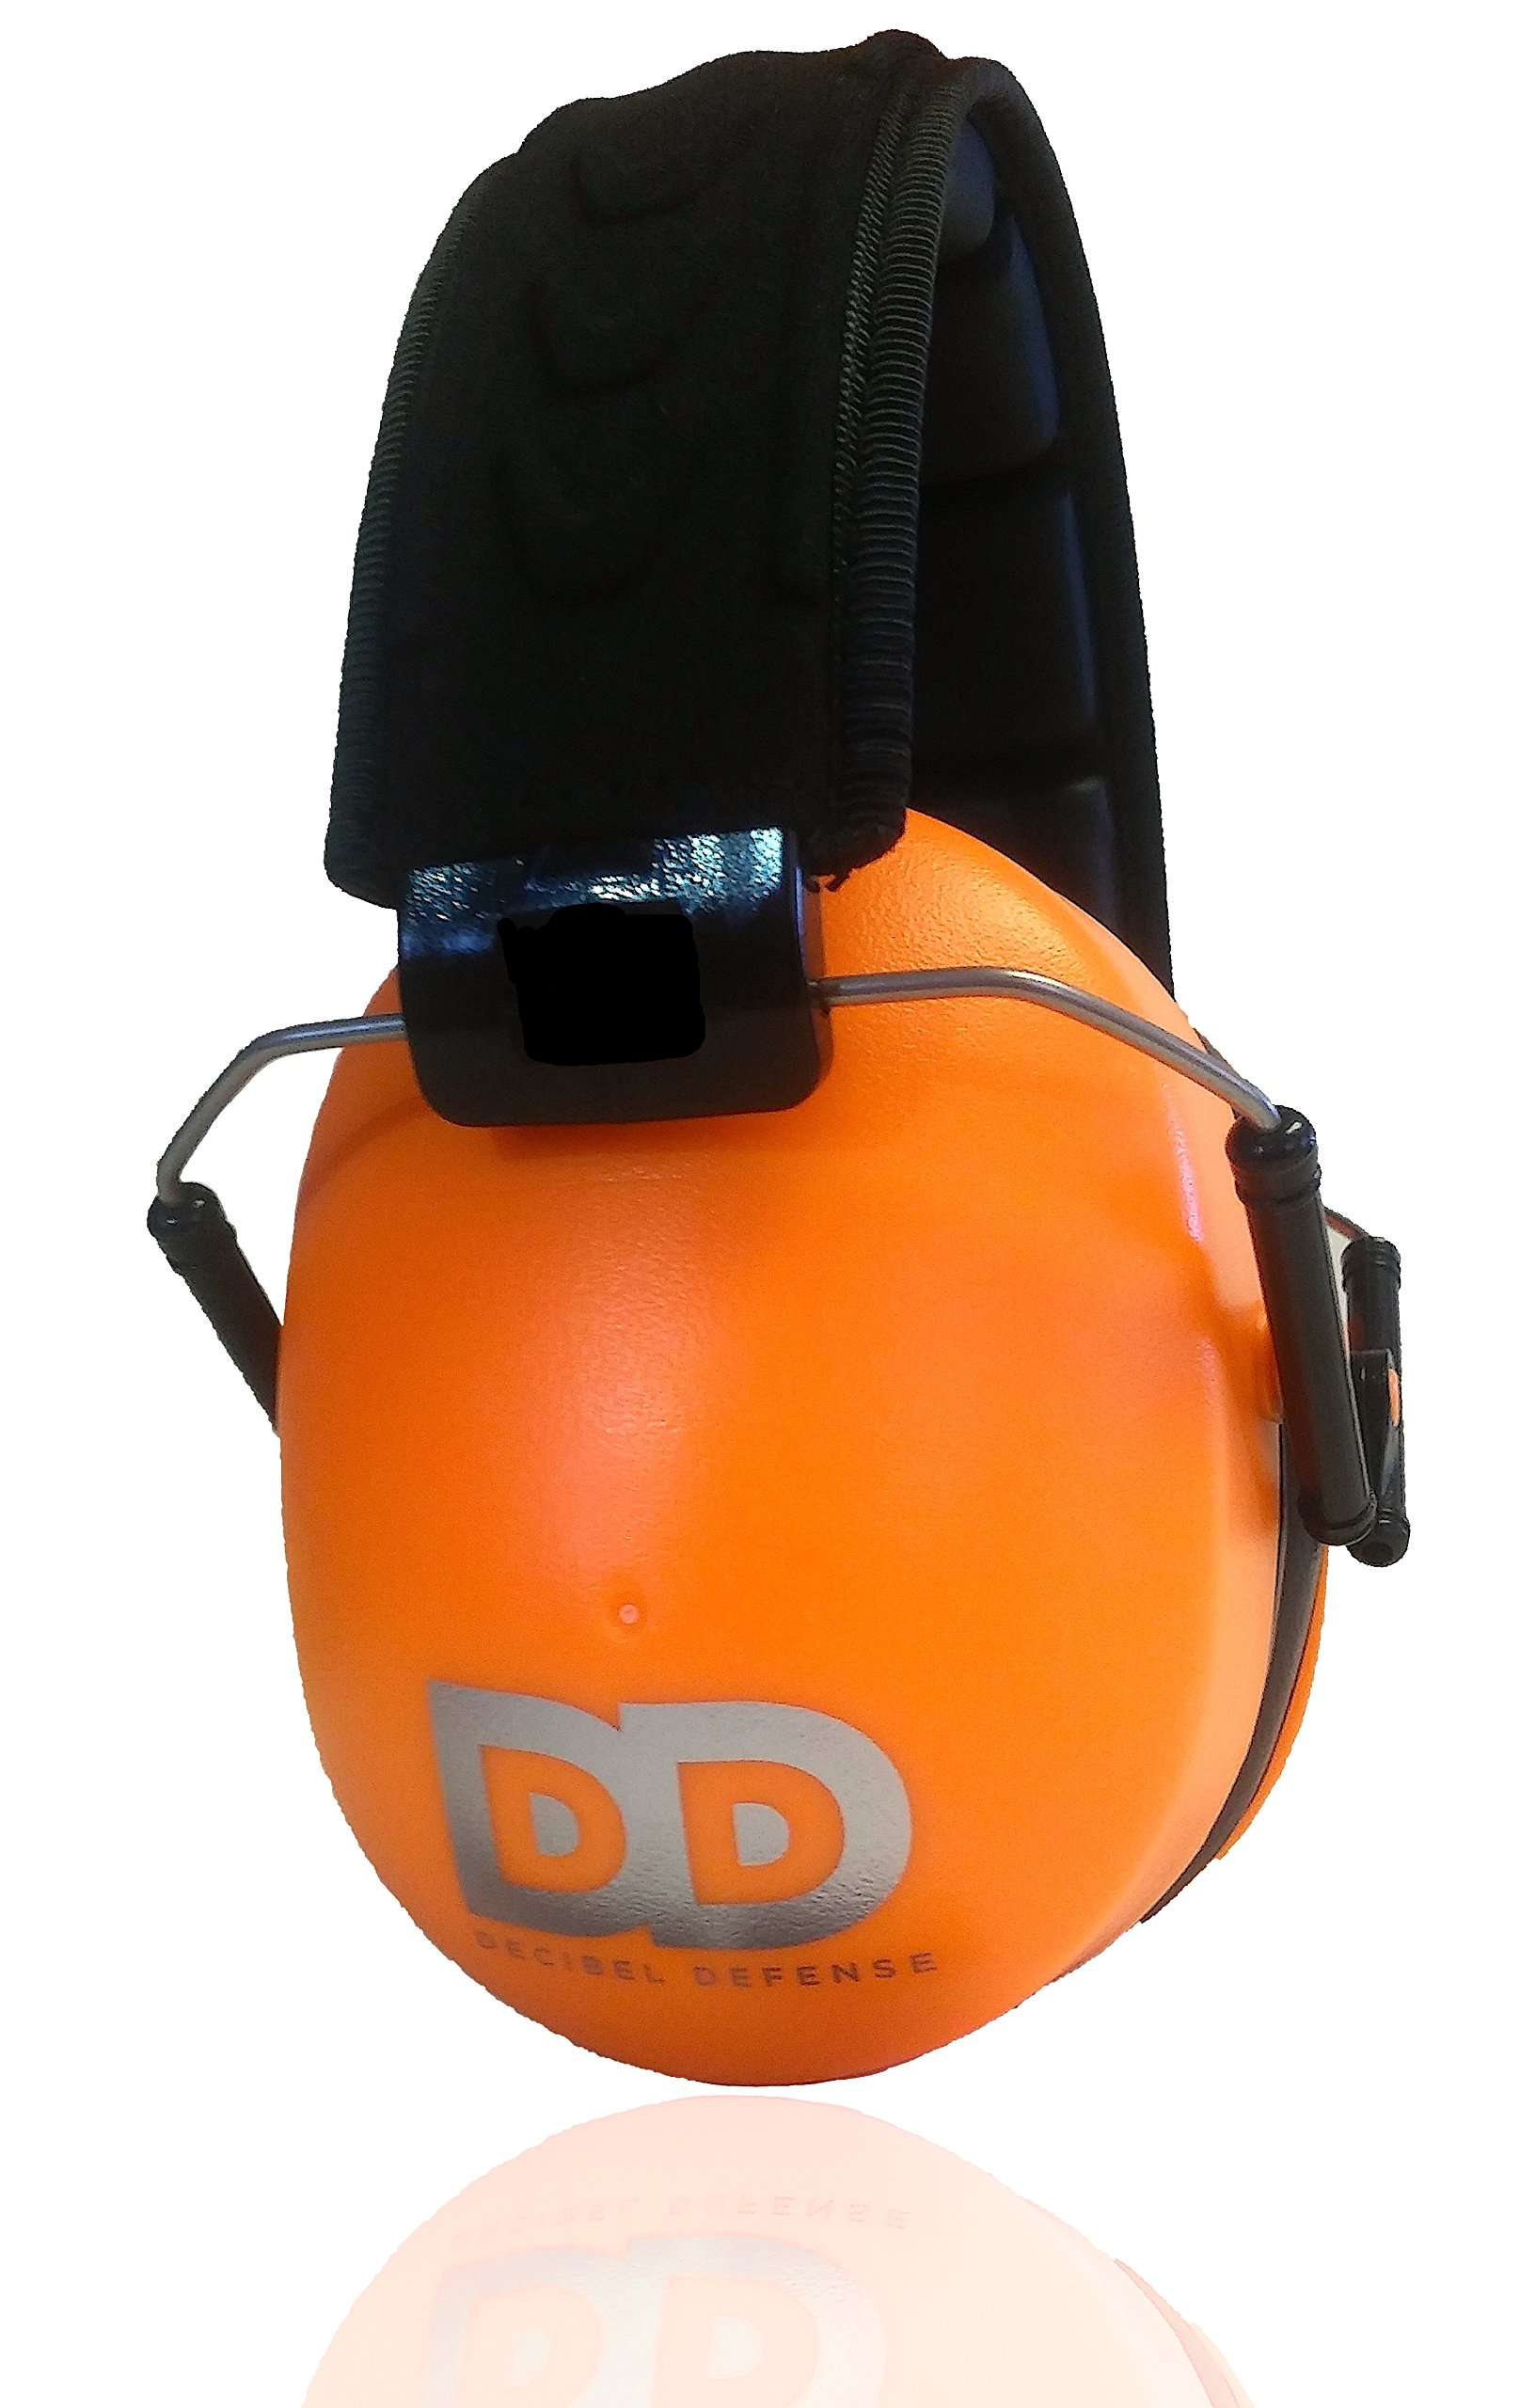 Professional Safety Ear Muffs by Decibel Defense - 37dB NRR - The HIGHEST Rated & MOST COMFORTABLE Ear Protection For Shooting & Industrial Use - THE BEST HEARING PROTECTION.GUARANTEE